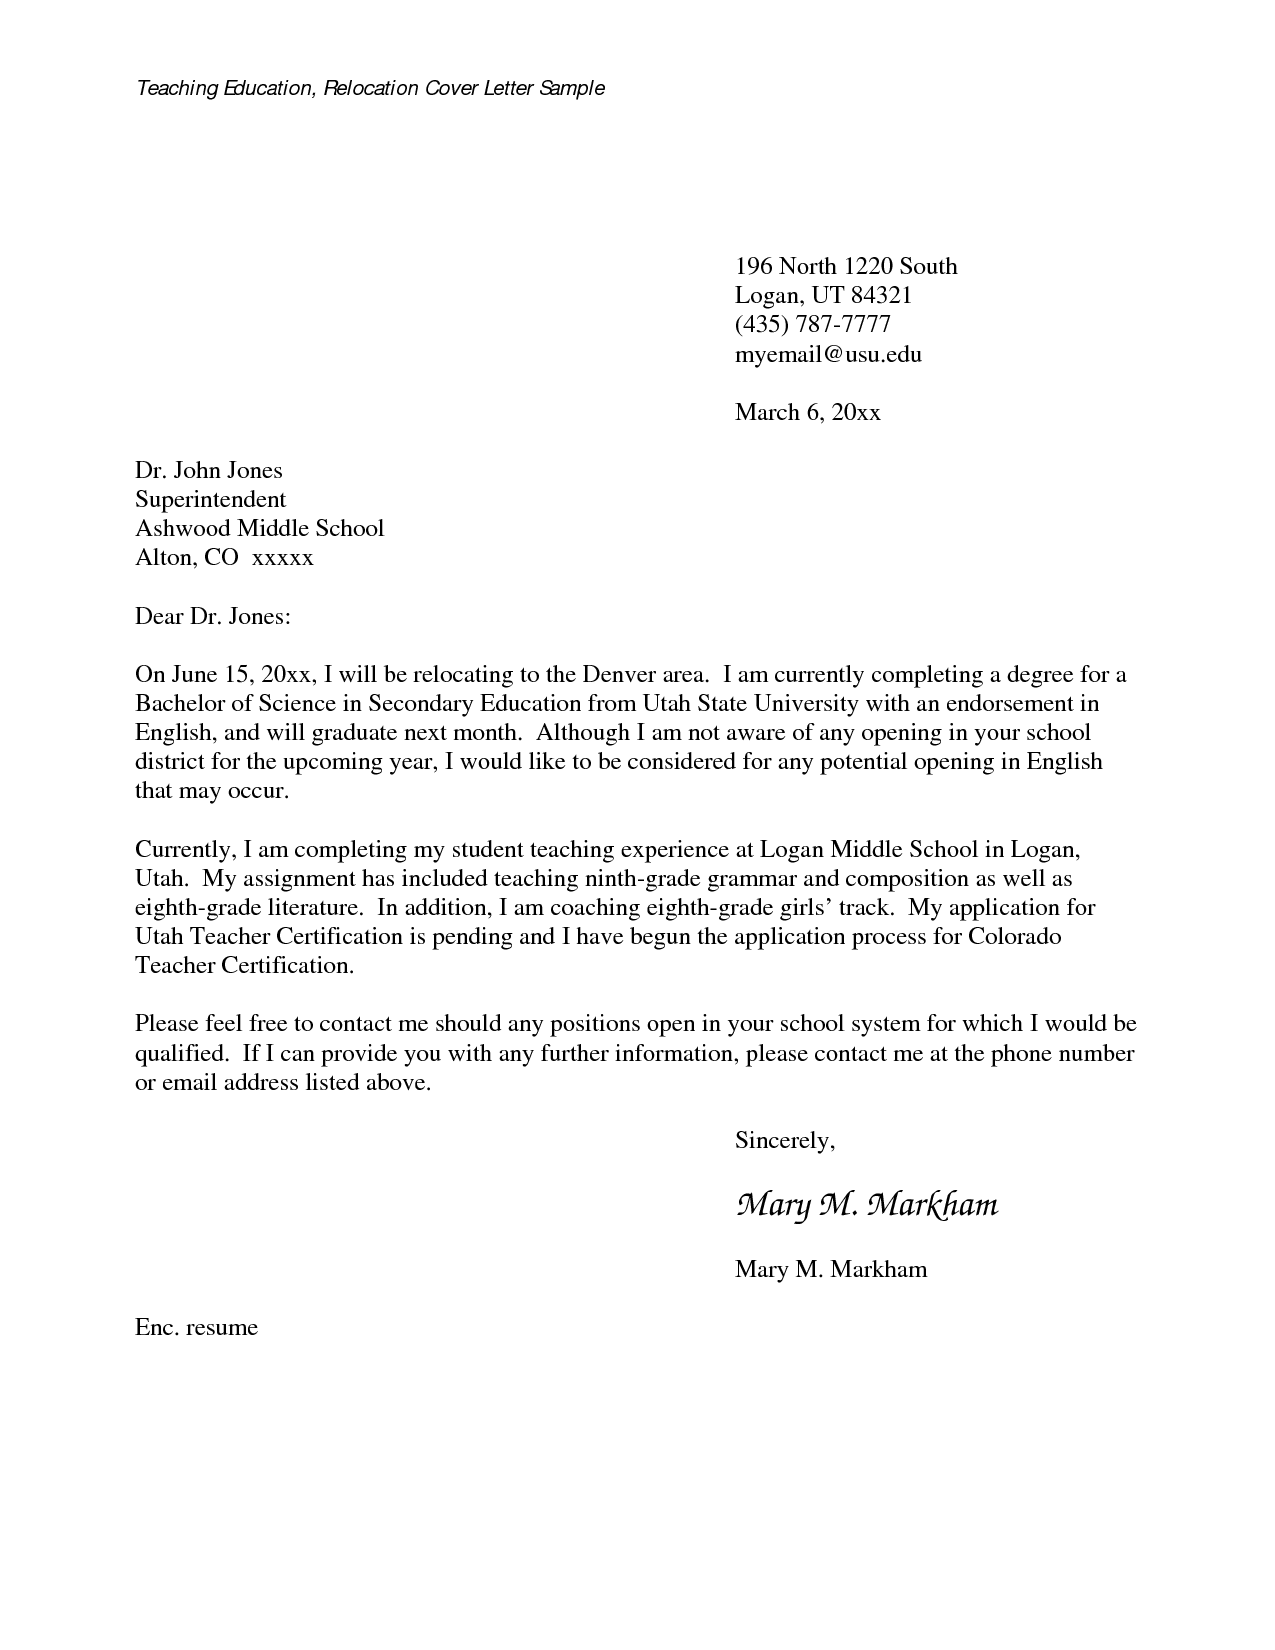 Letters for teachers relocating medwebcomrelocation cover for Cover letter for out of state job example